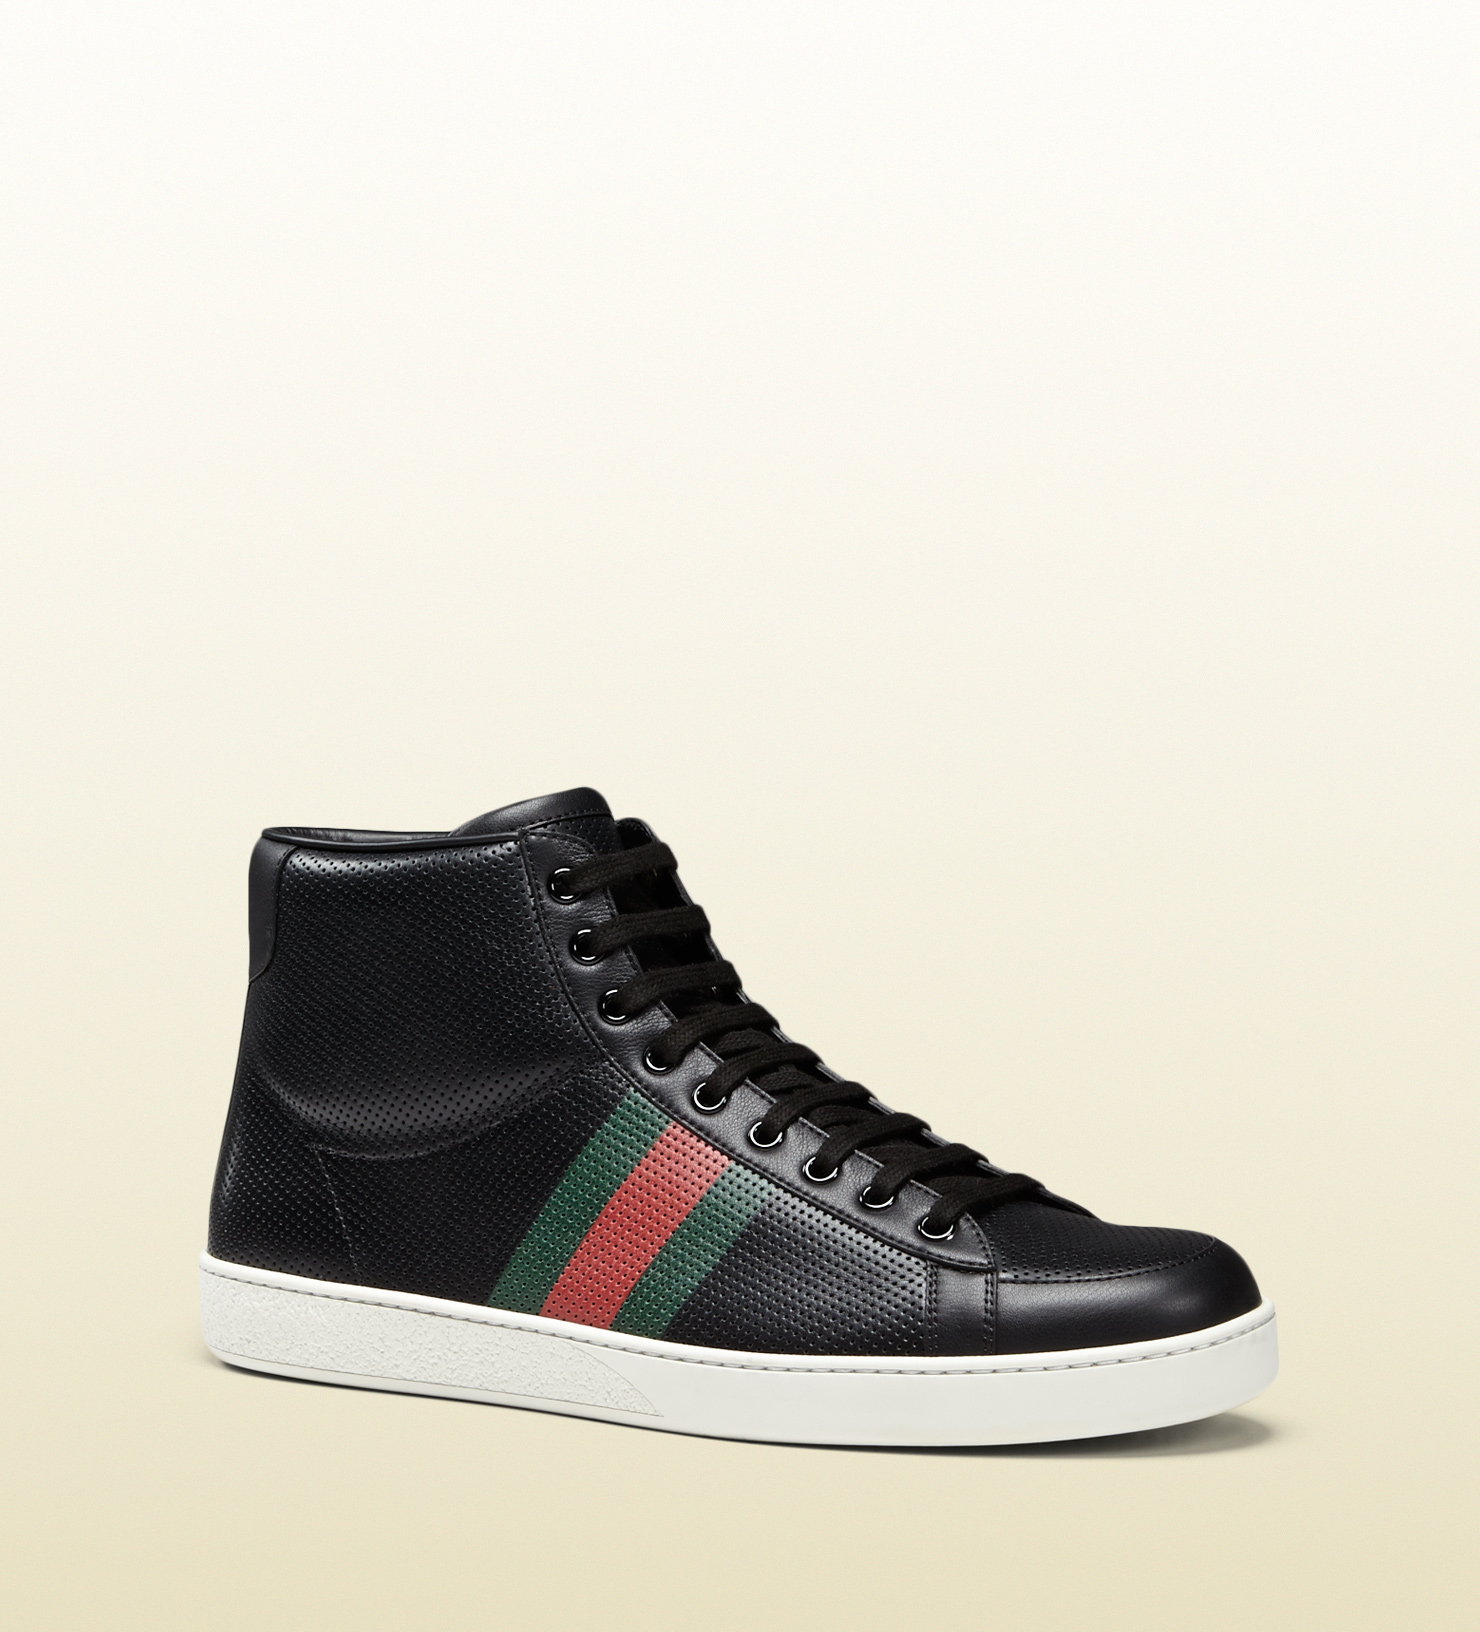 gucci perforated leather high top sneaker in black for men. Black Bedroom Furniture Sets. Home Design Ideas